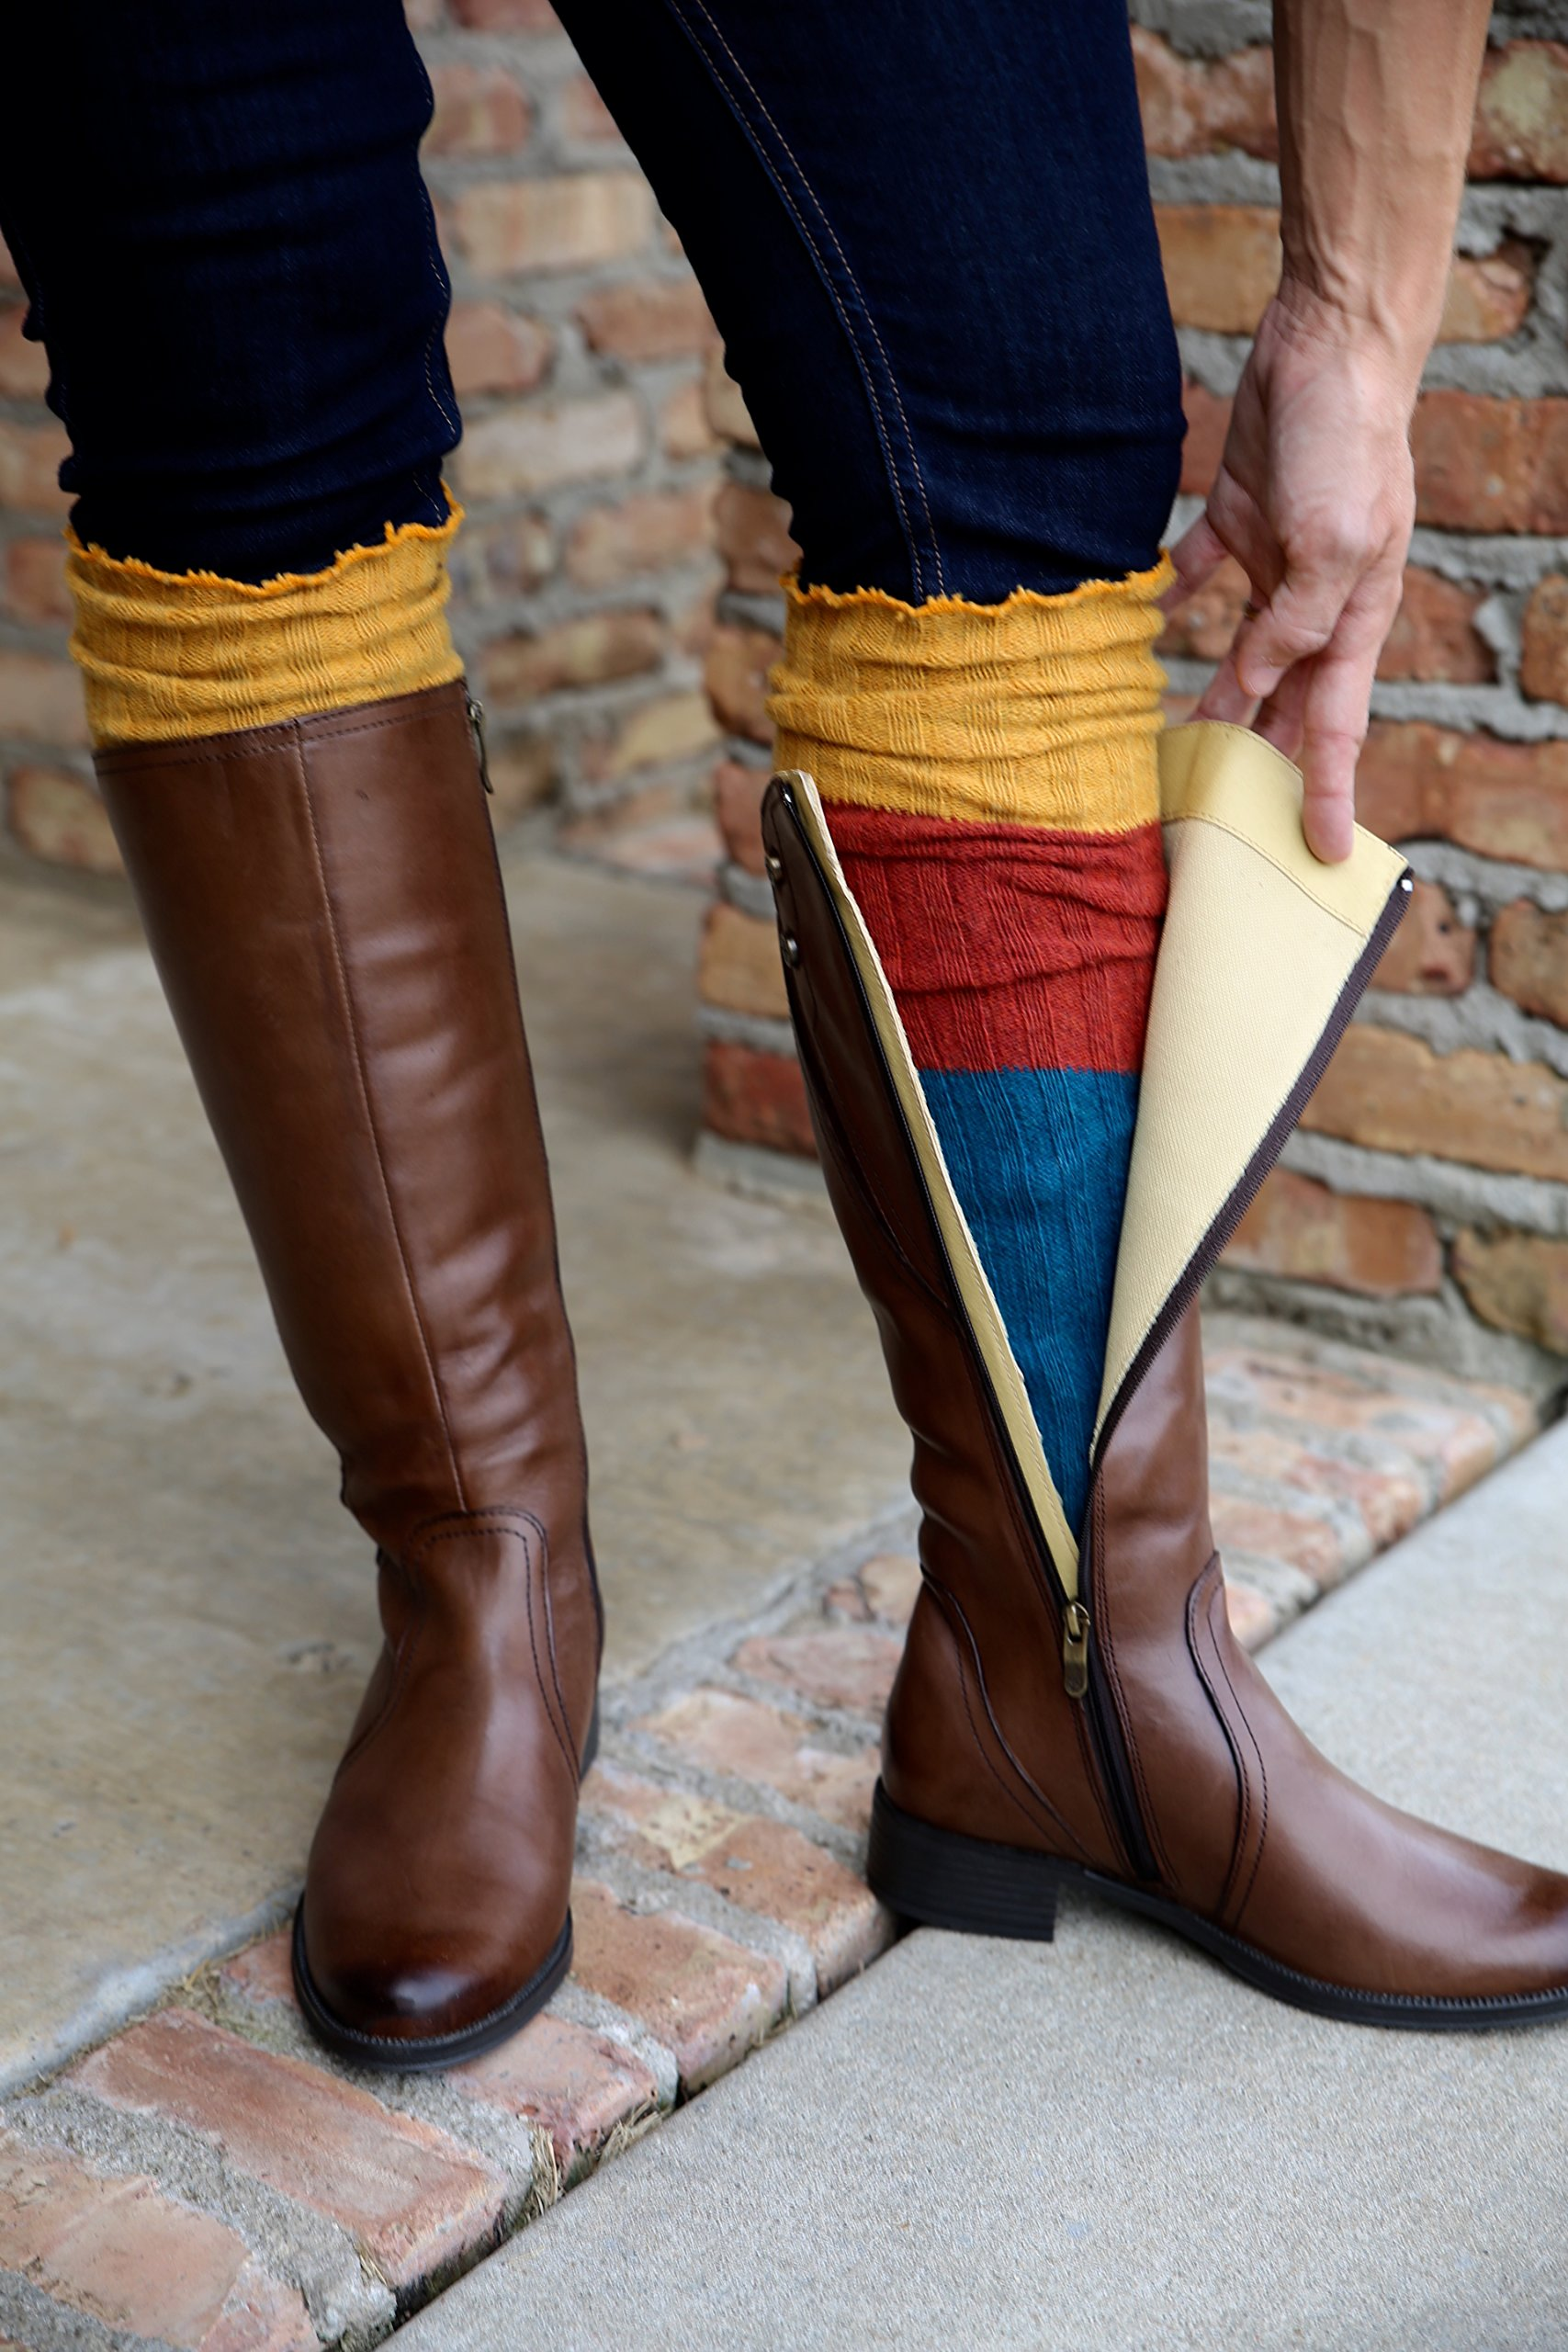 Lucky Love (TM) Striped Multicolor Reversible Knit Leg Warmers by Lucky Love (Image #4)